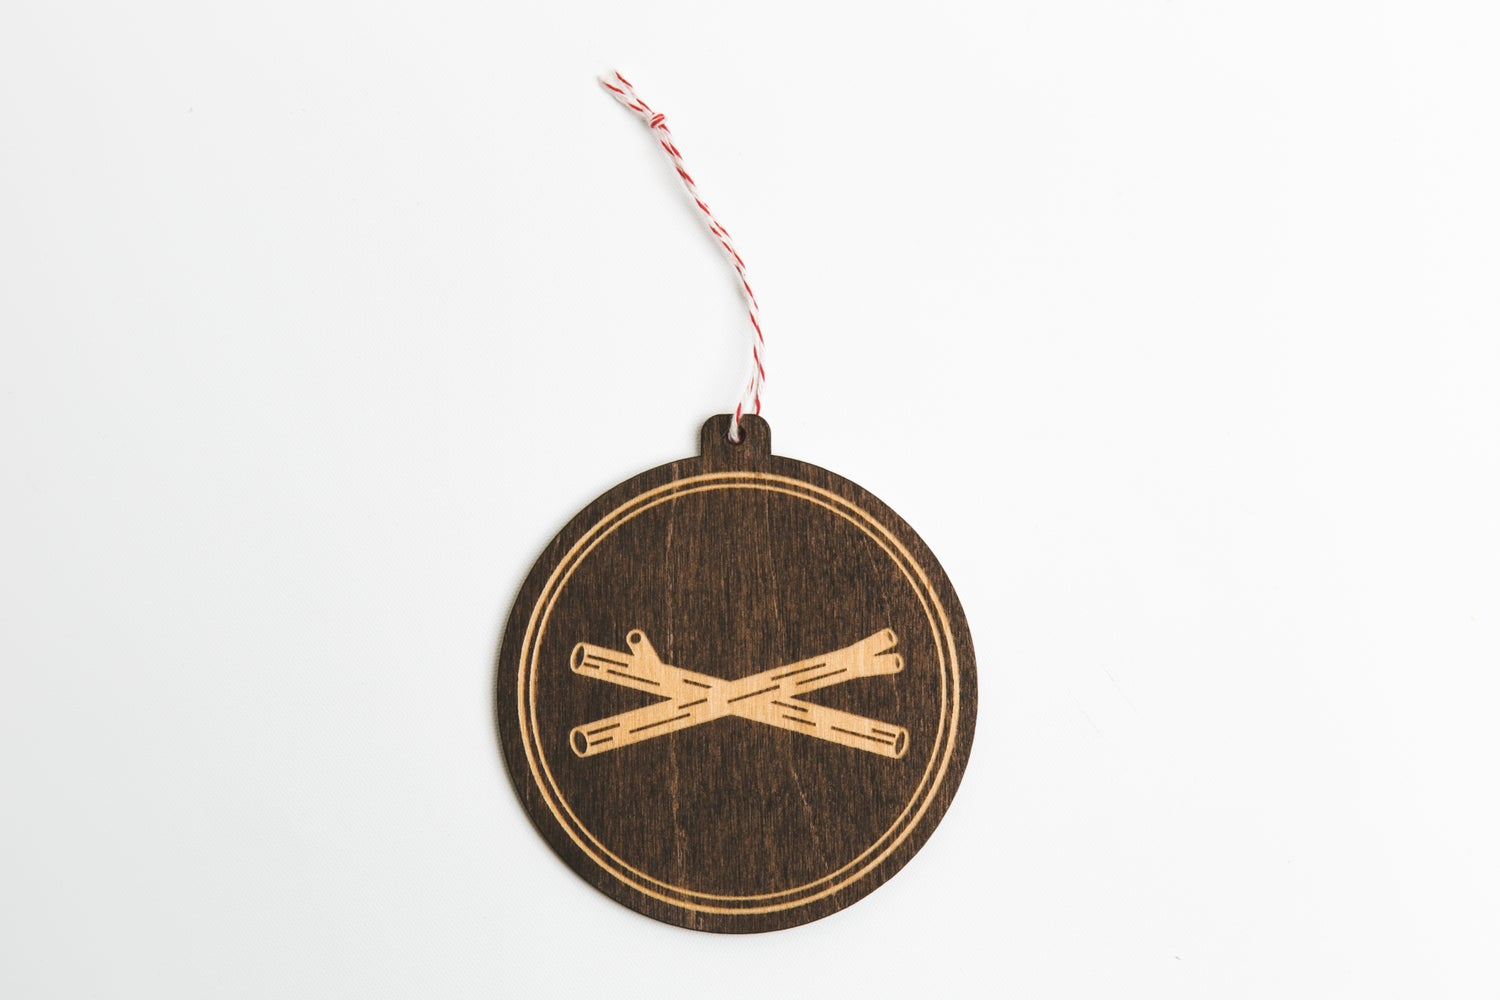 Image of Wooden Ornament